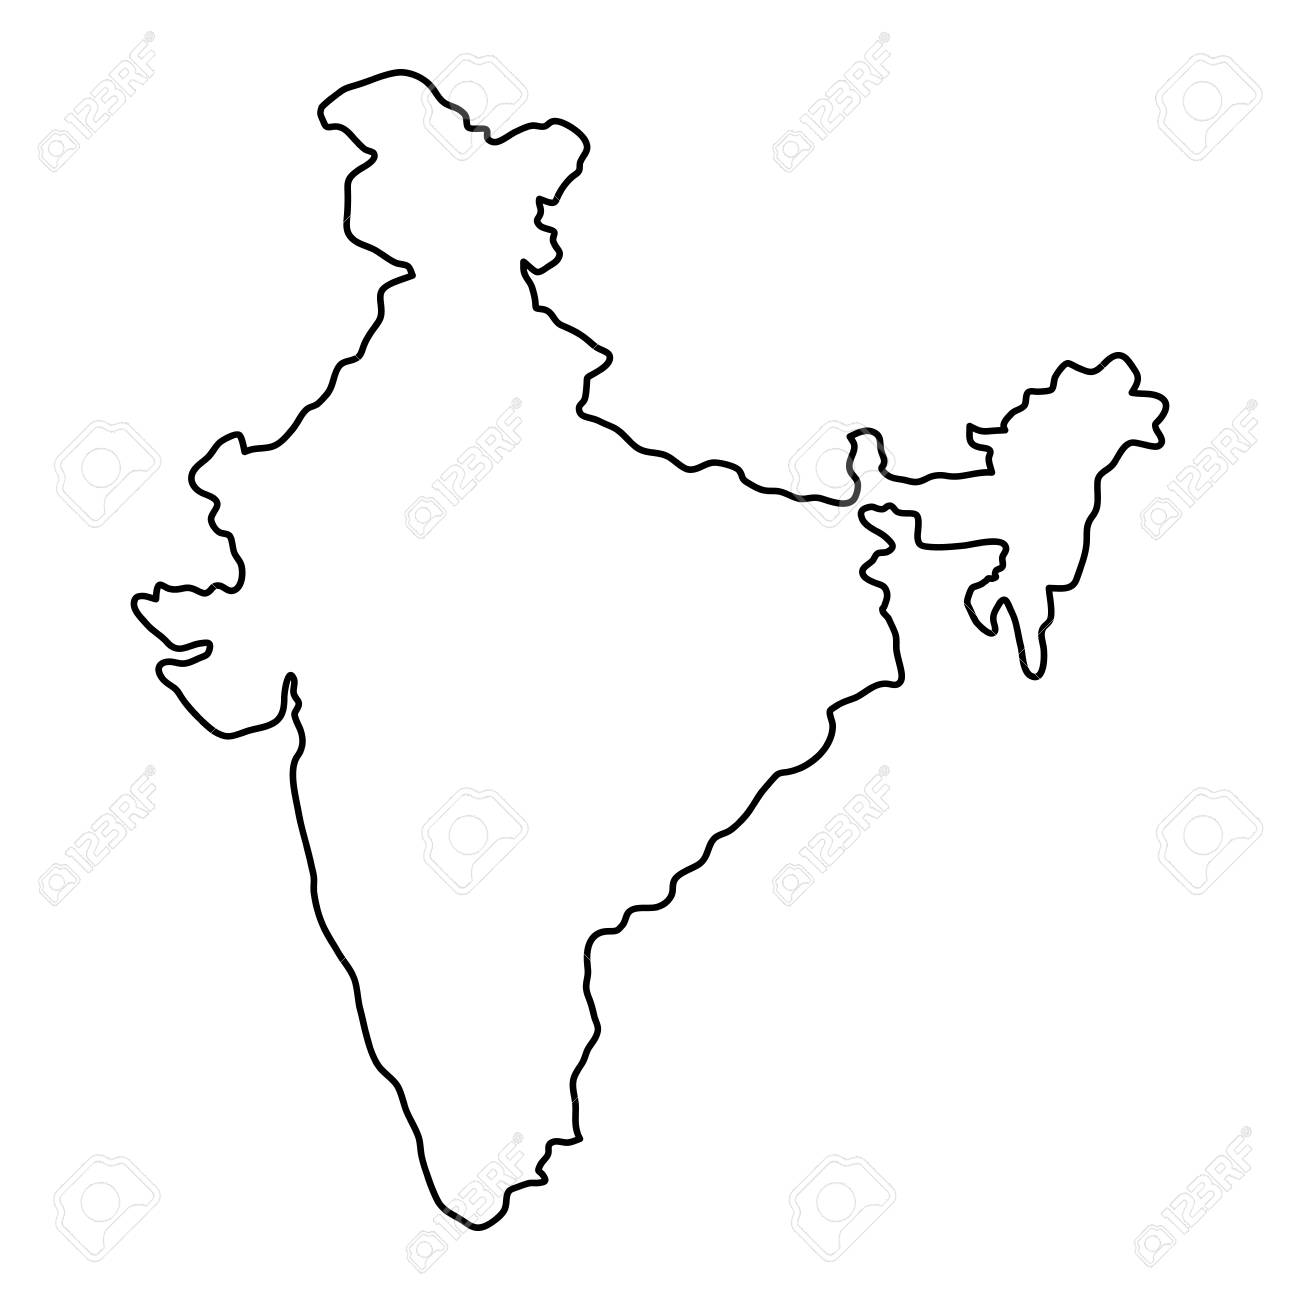 India map of black contour curves of vector illustration.